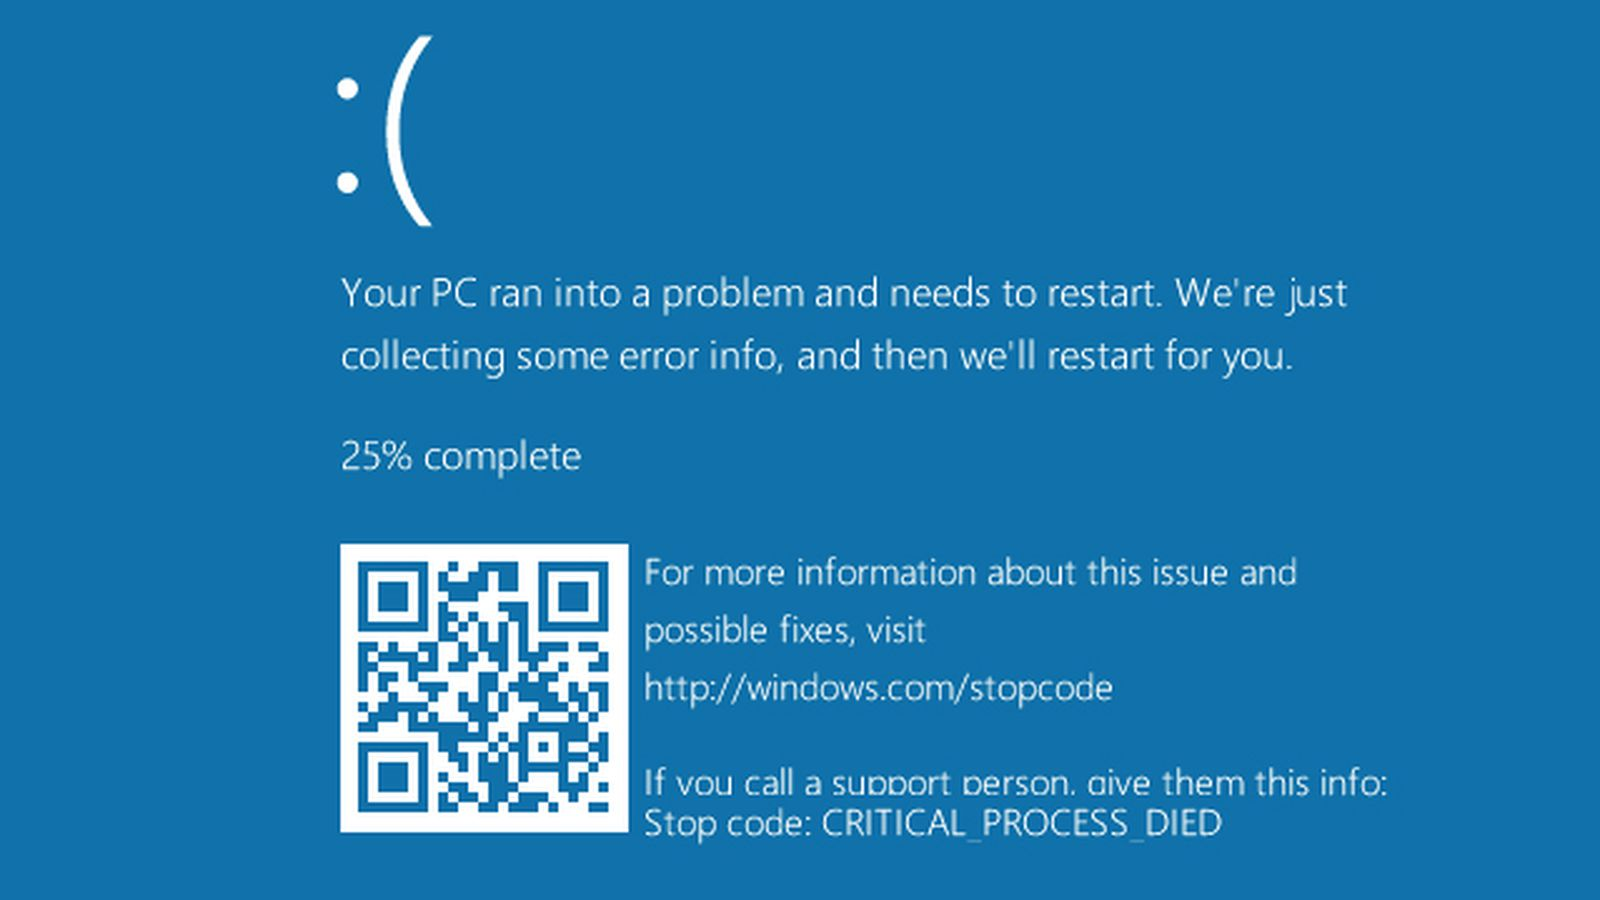 Microsoft Adds Qr Codes To The Windows 10 Blue Screen Of